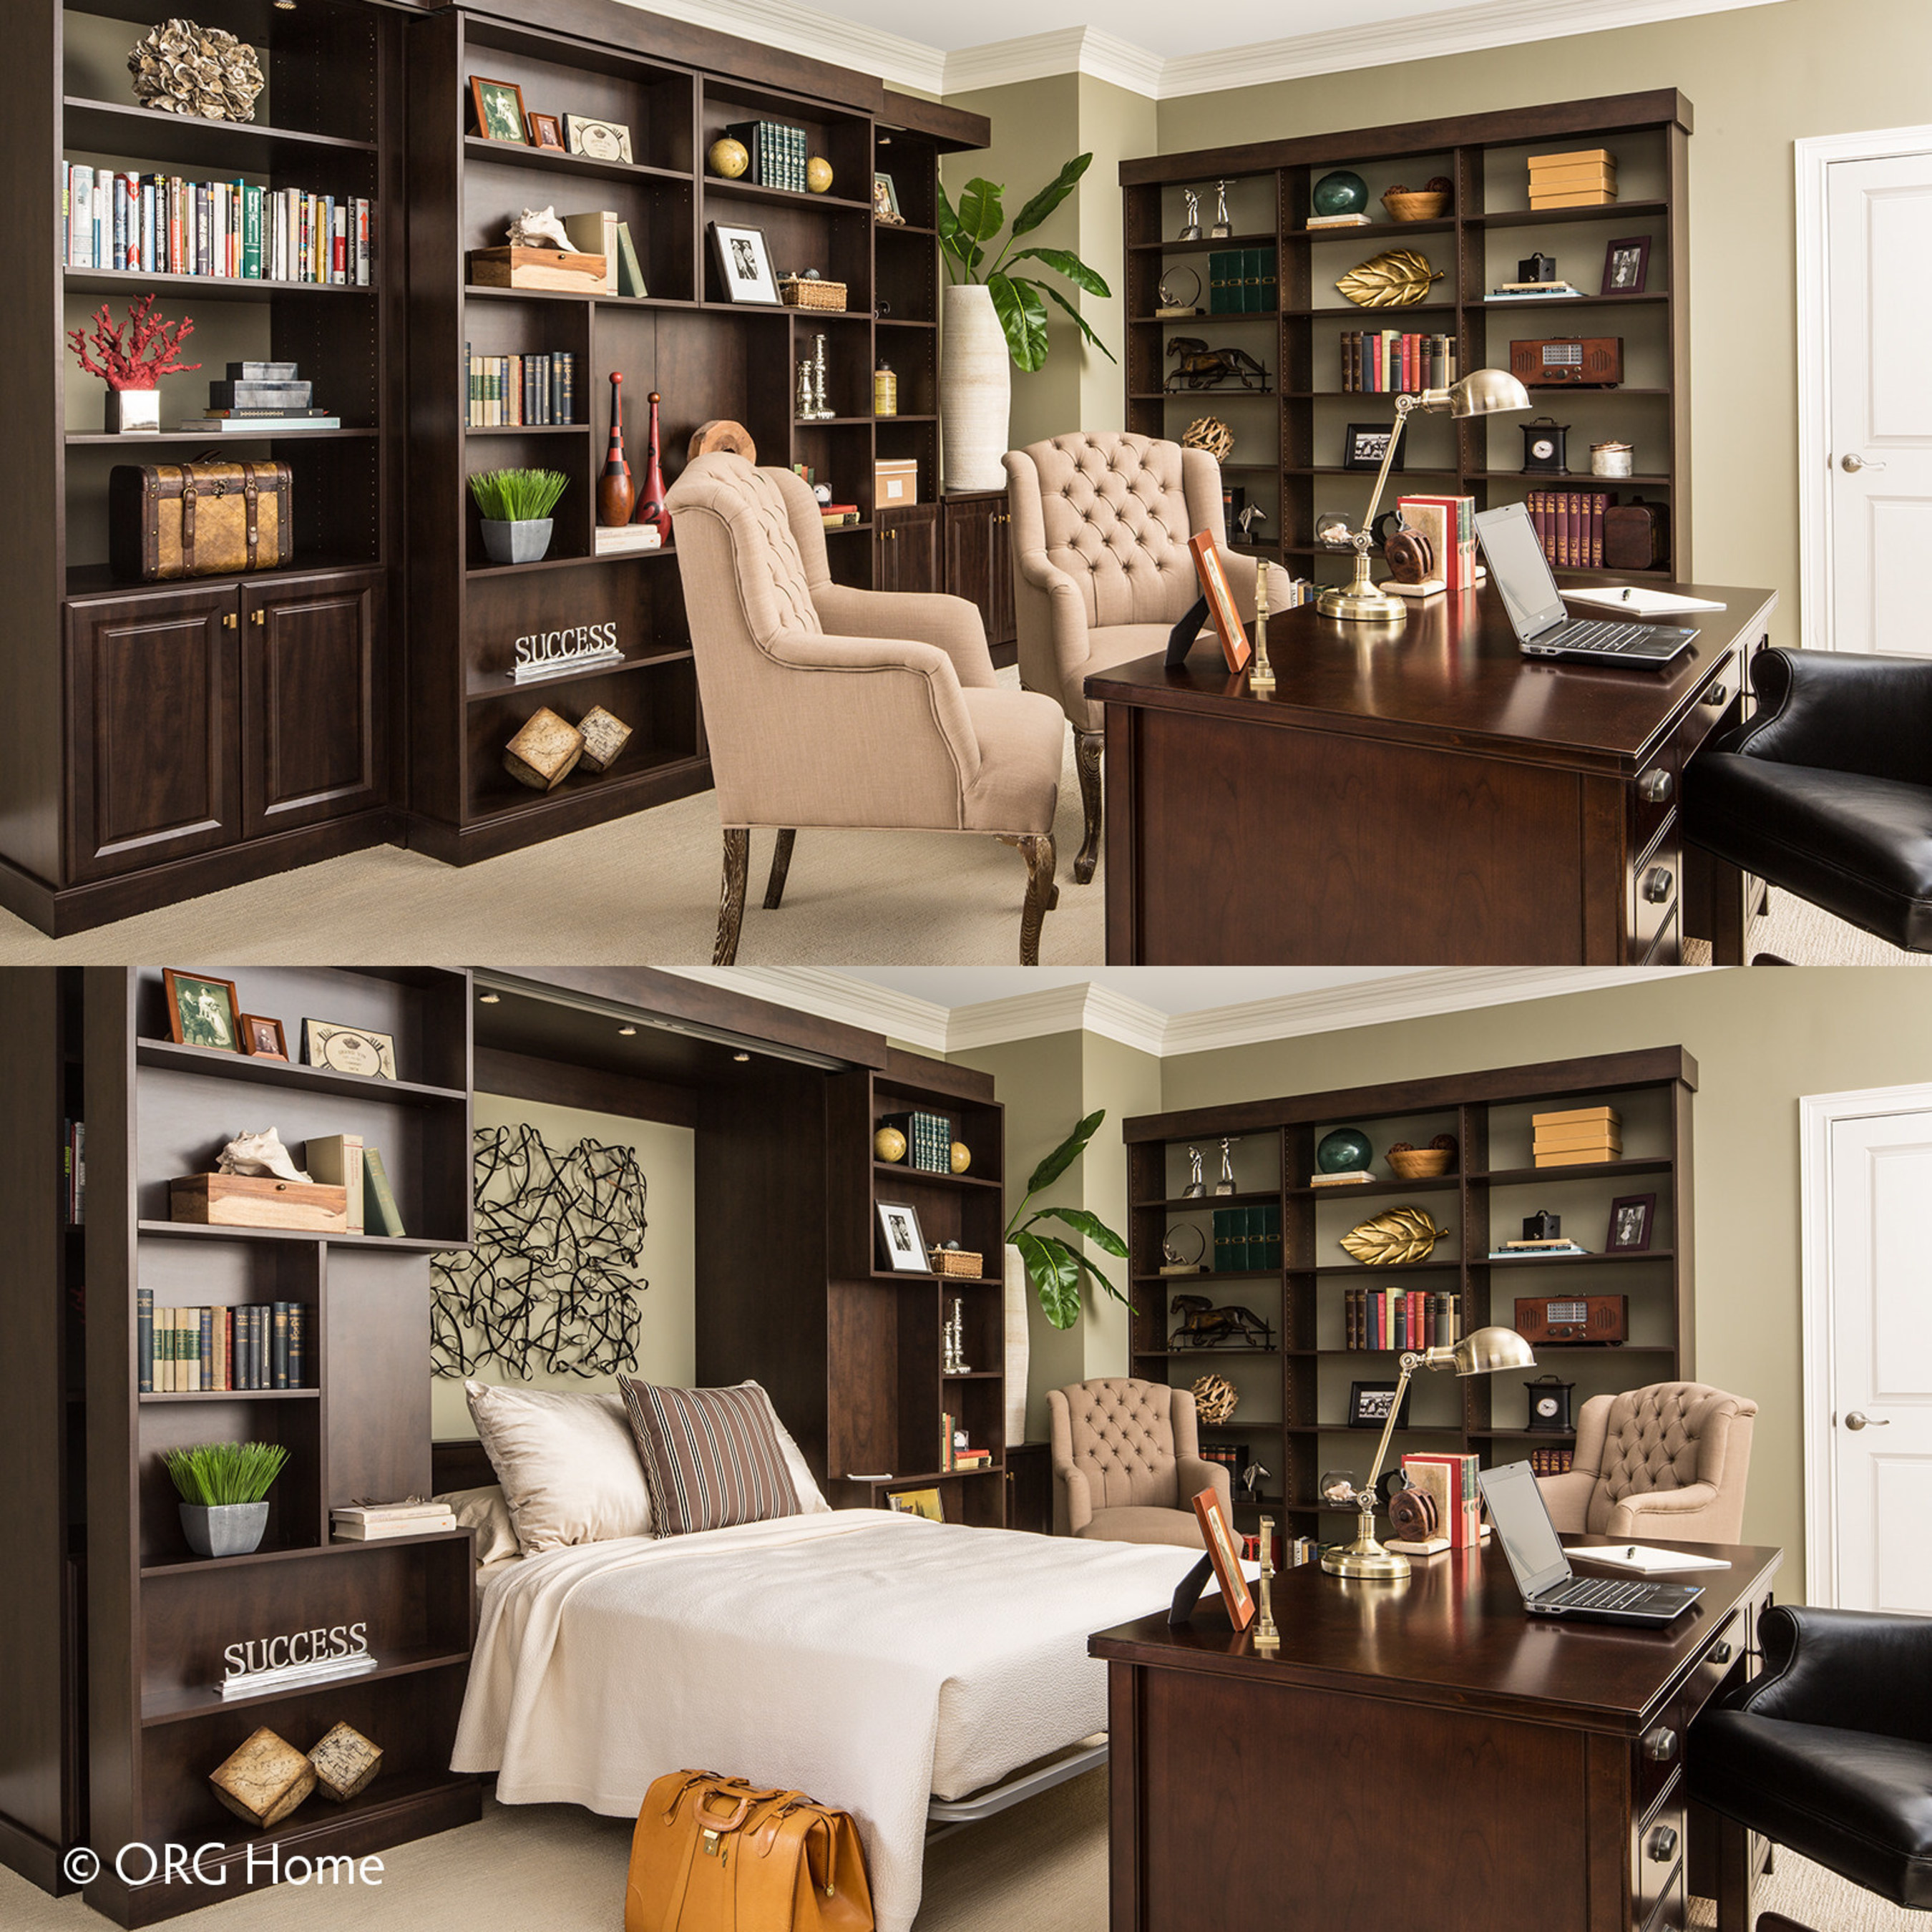 unique murphy bed | ORG Home Expands Murphy Bed Product Line With Three New ...